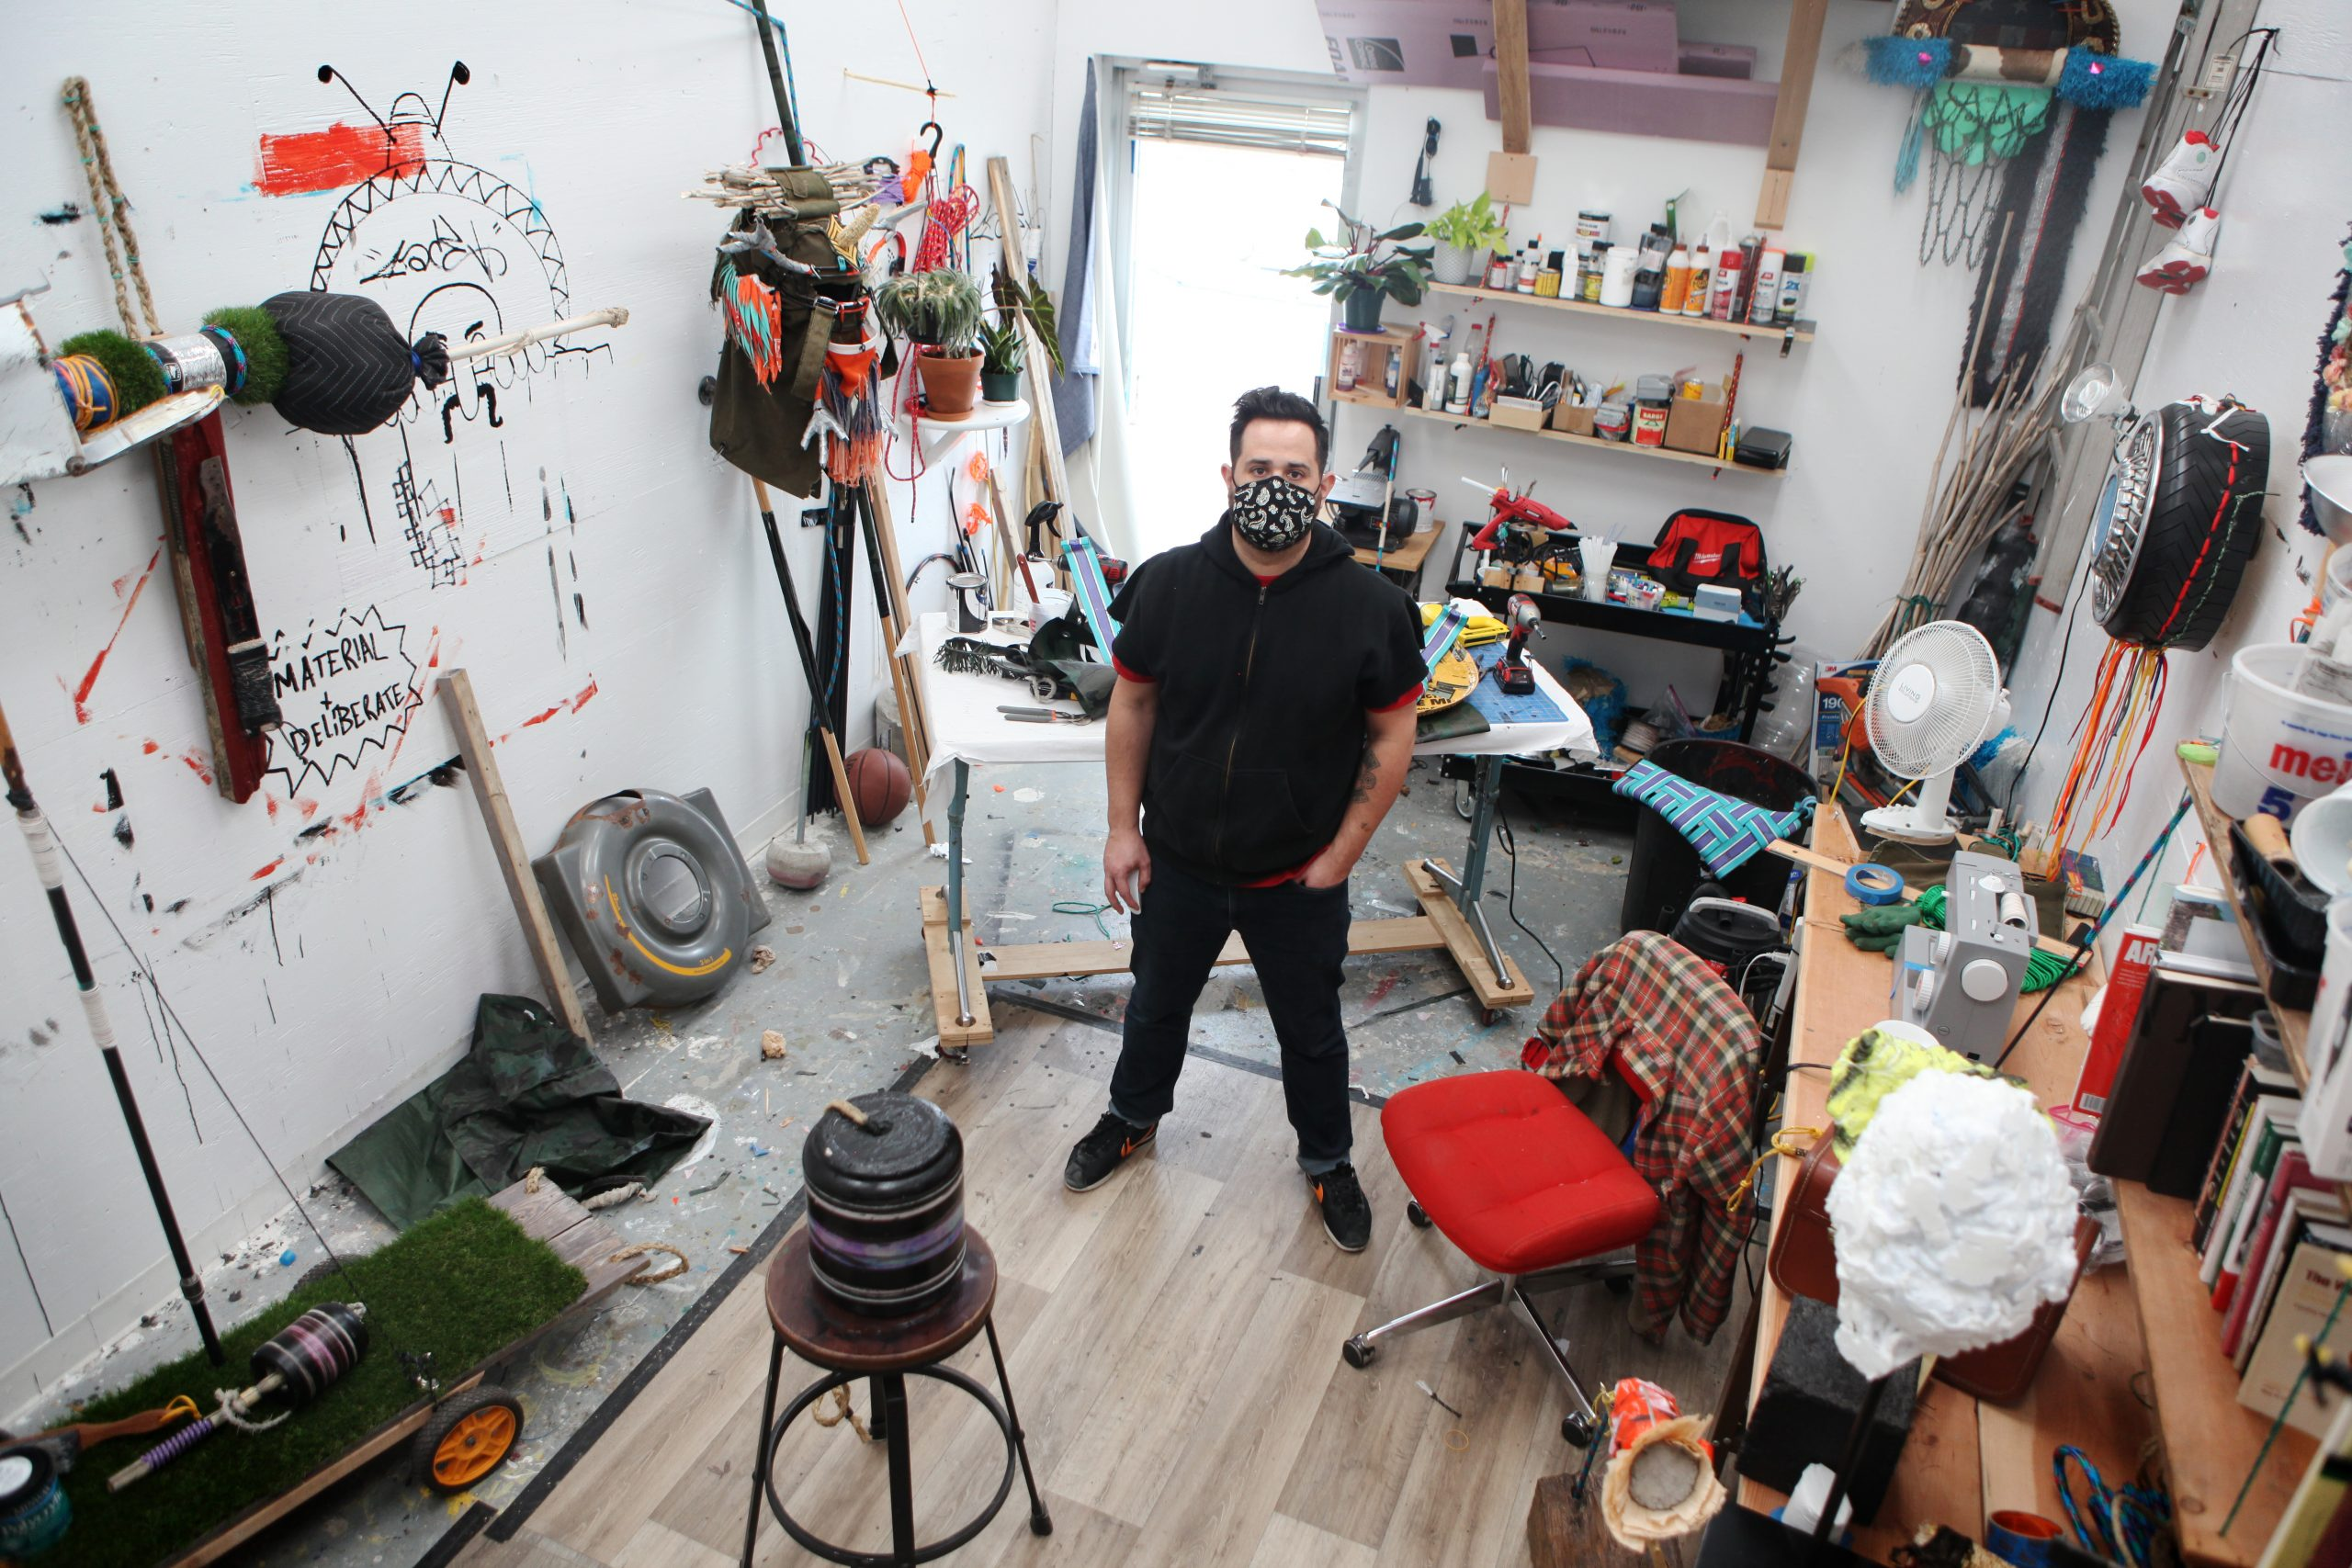 Featured Image: Stephen Signa-Aviles stands in his studio at the University of Illinois at Urbana-Champaign. He is wearing dark jeans and a dark, short-sleeved hooded sweatshirt, and a black face mask with a white graphic pattern. He looks up and into the camera. His studio space is narrow and cluttered. There are various works in progress, as well as shelving units with paints, books, and other materials. Photo courtesy of Stephen Signa-Aviles.